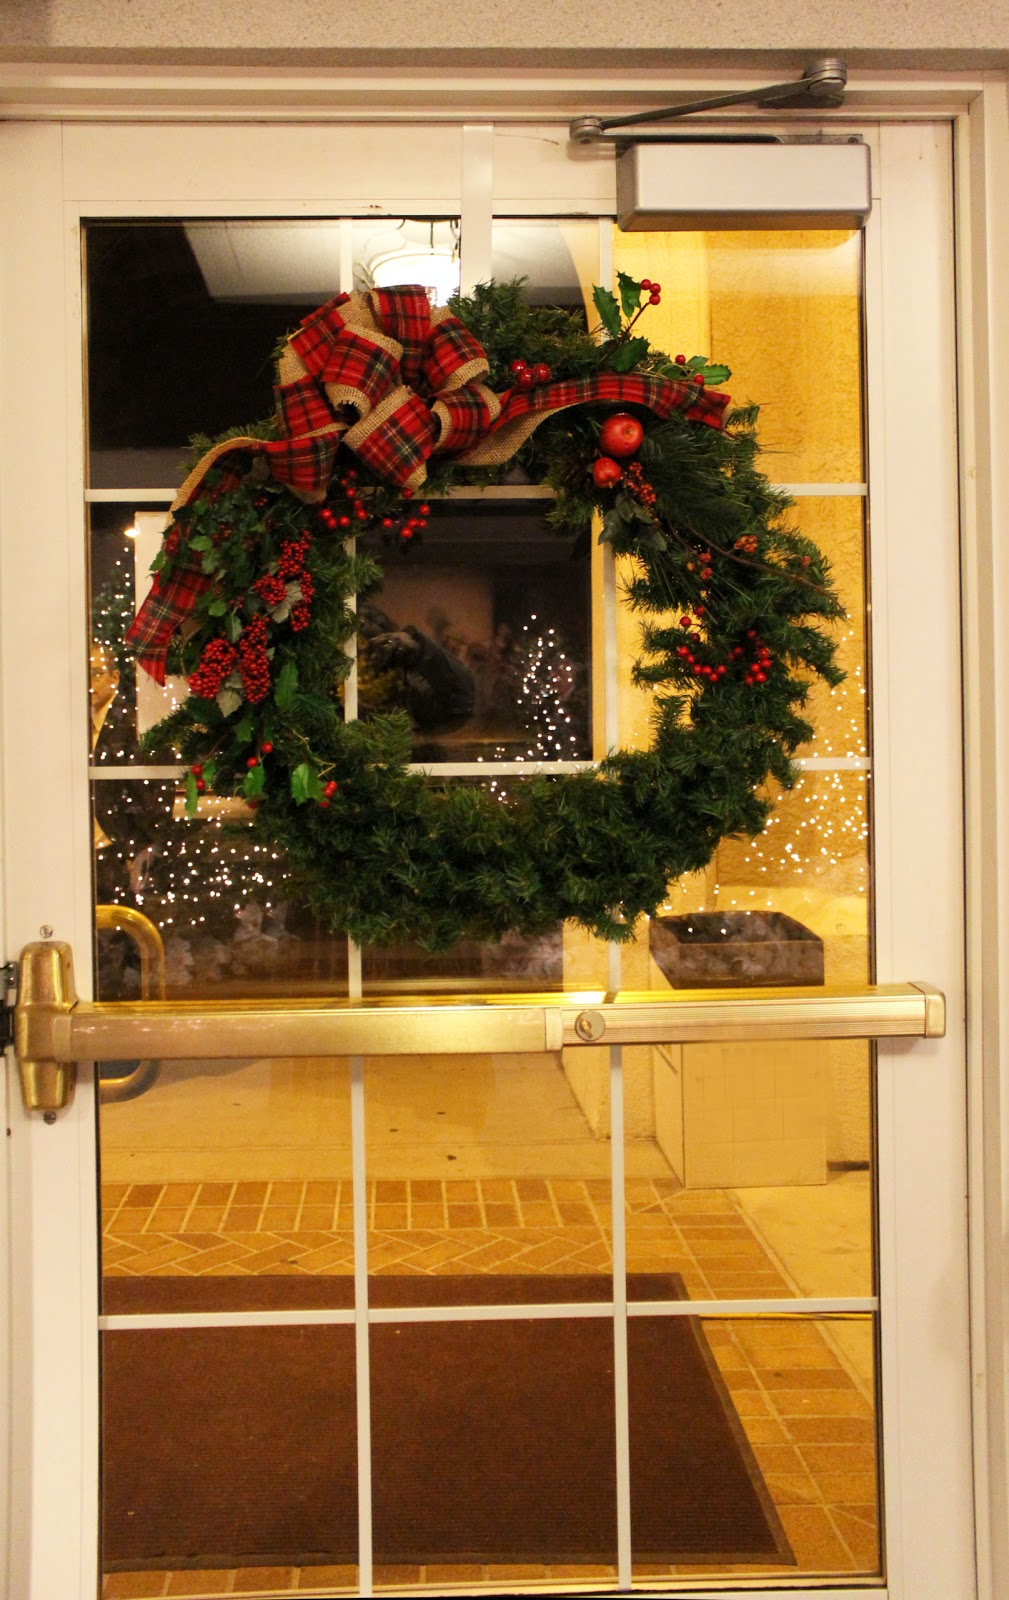 C b i d home decor and design christmas decor a warm welcome - Inviting door color ideas for welcoming the guests in sweeter way ...